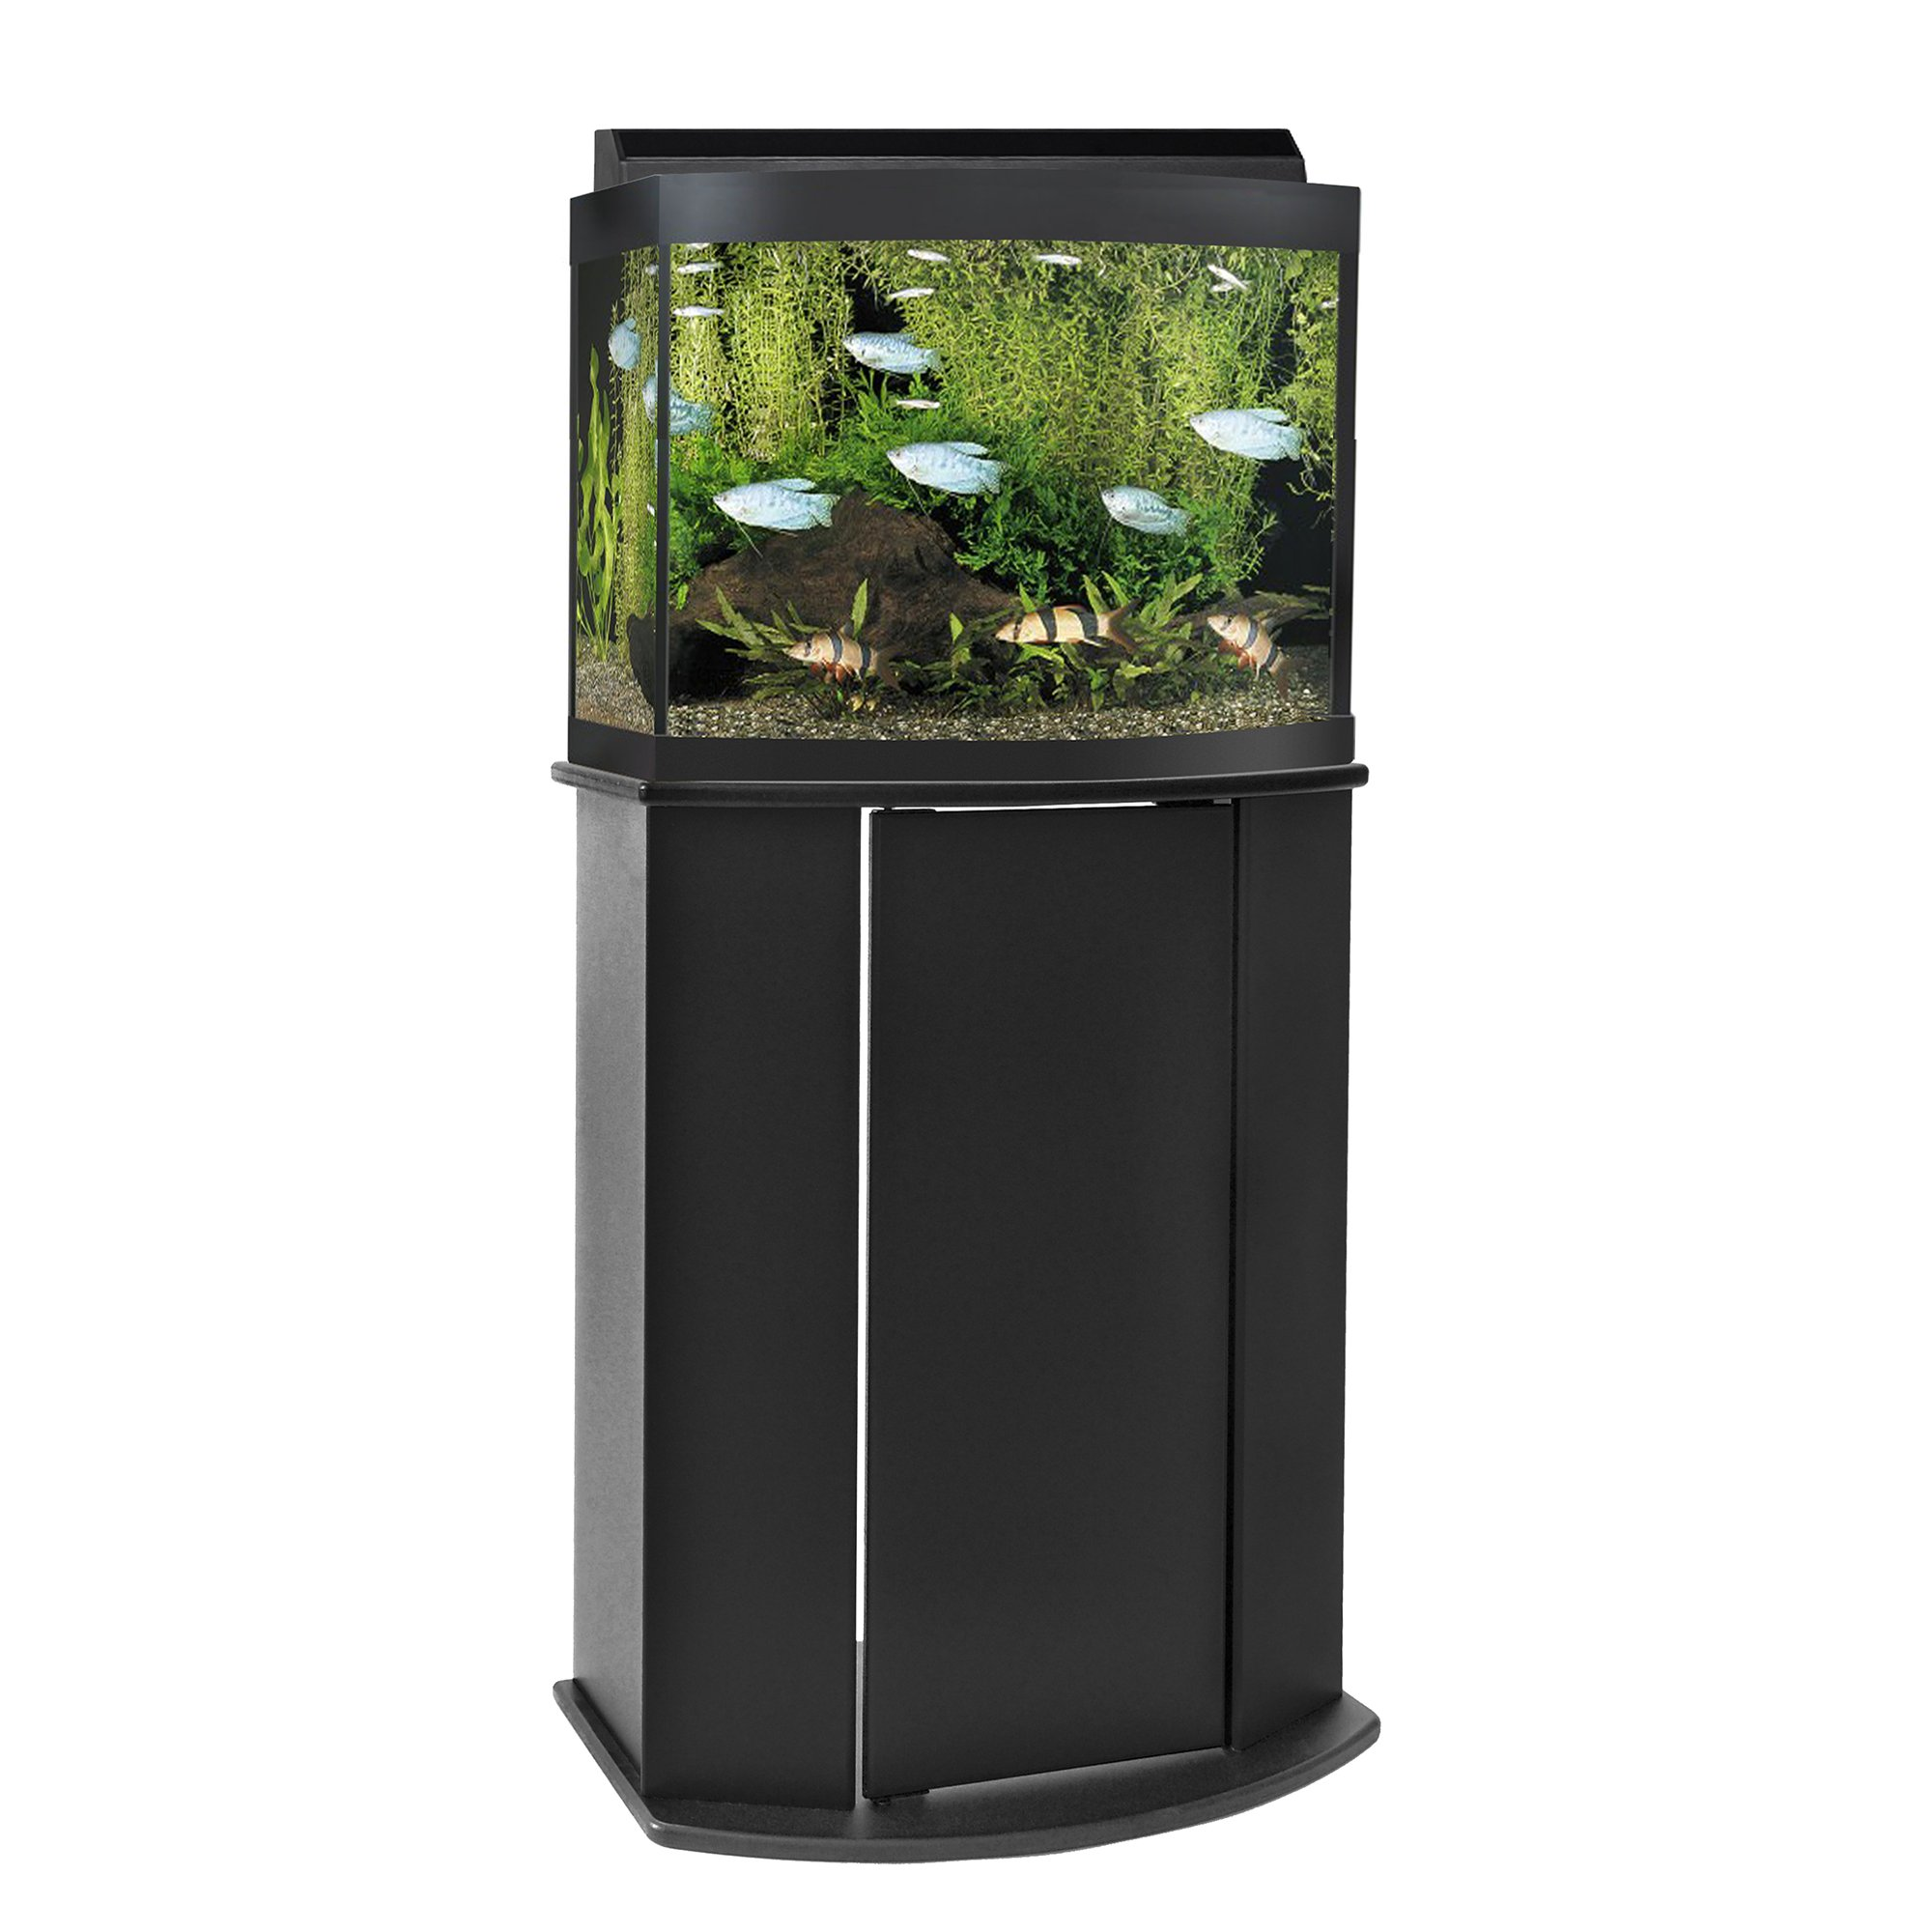 Aquarium stand petco fundamentals black scroll aquarium for Fish tanks with stands